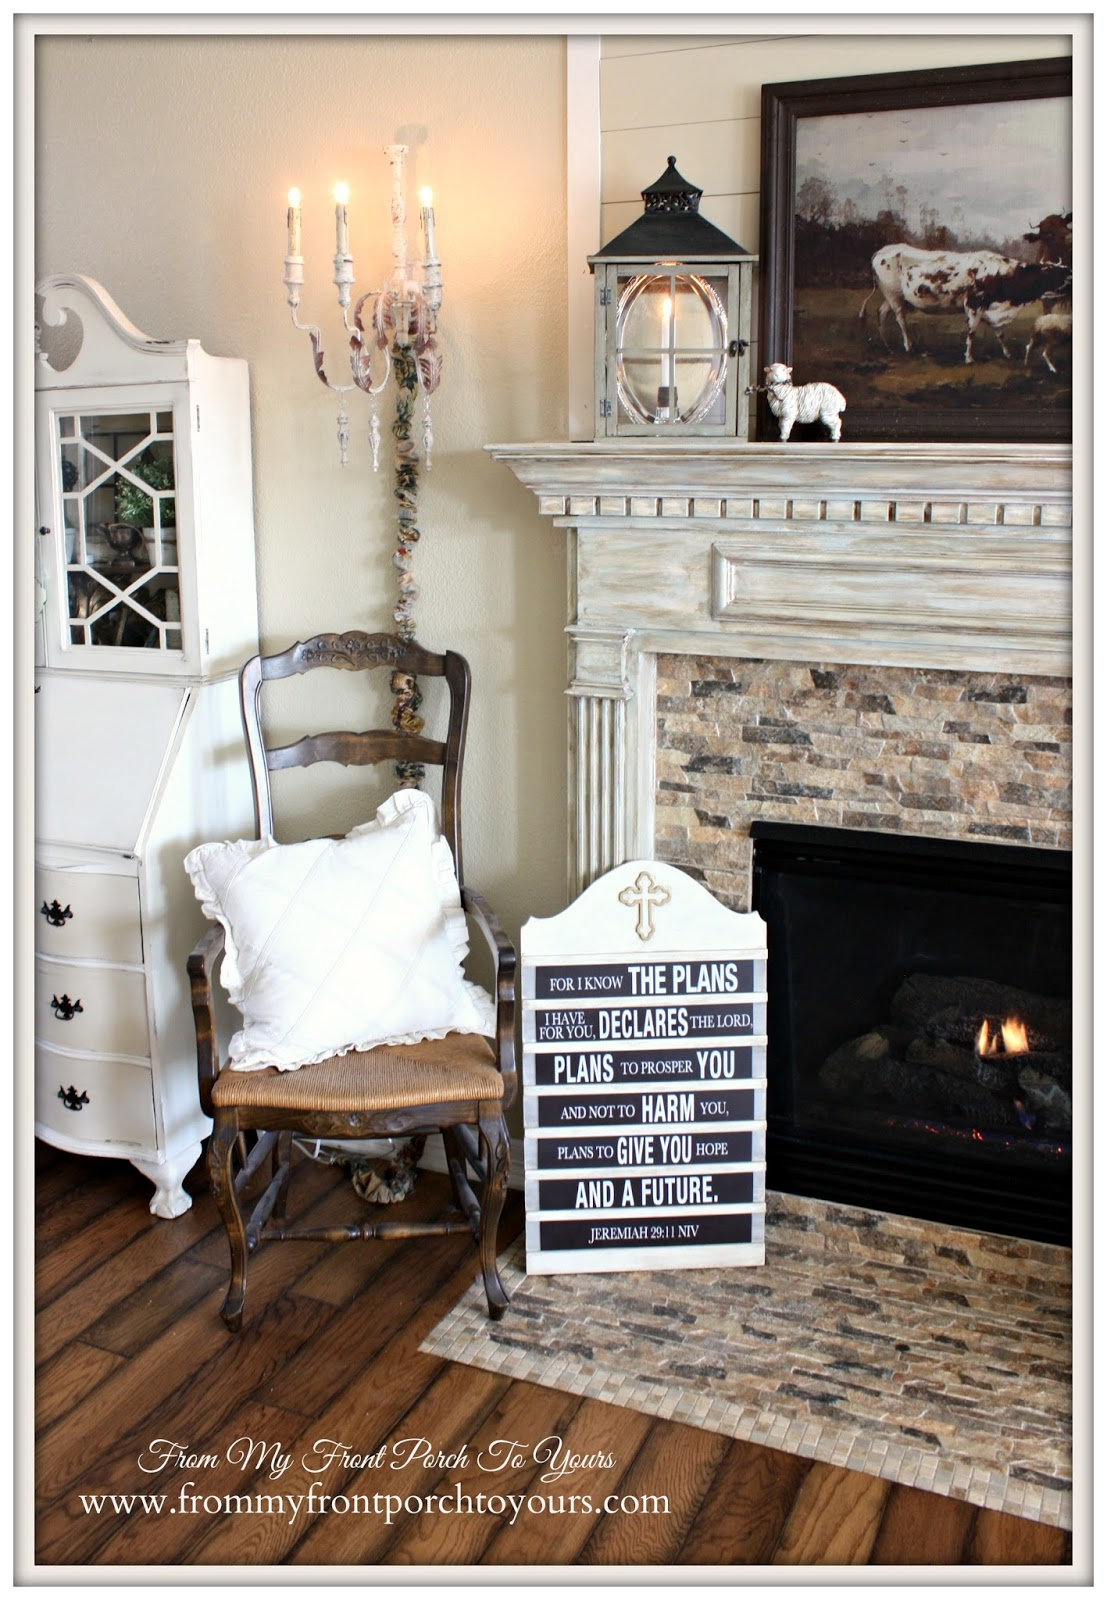 DIY Hymnal Board-French Country Mantel Vignette- From My Front Porch To Yours